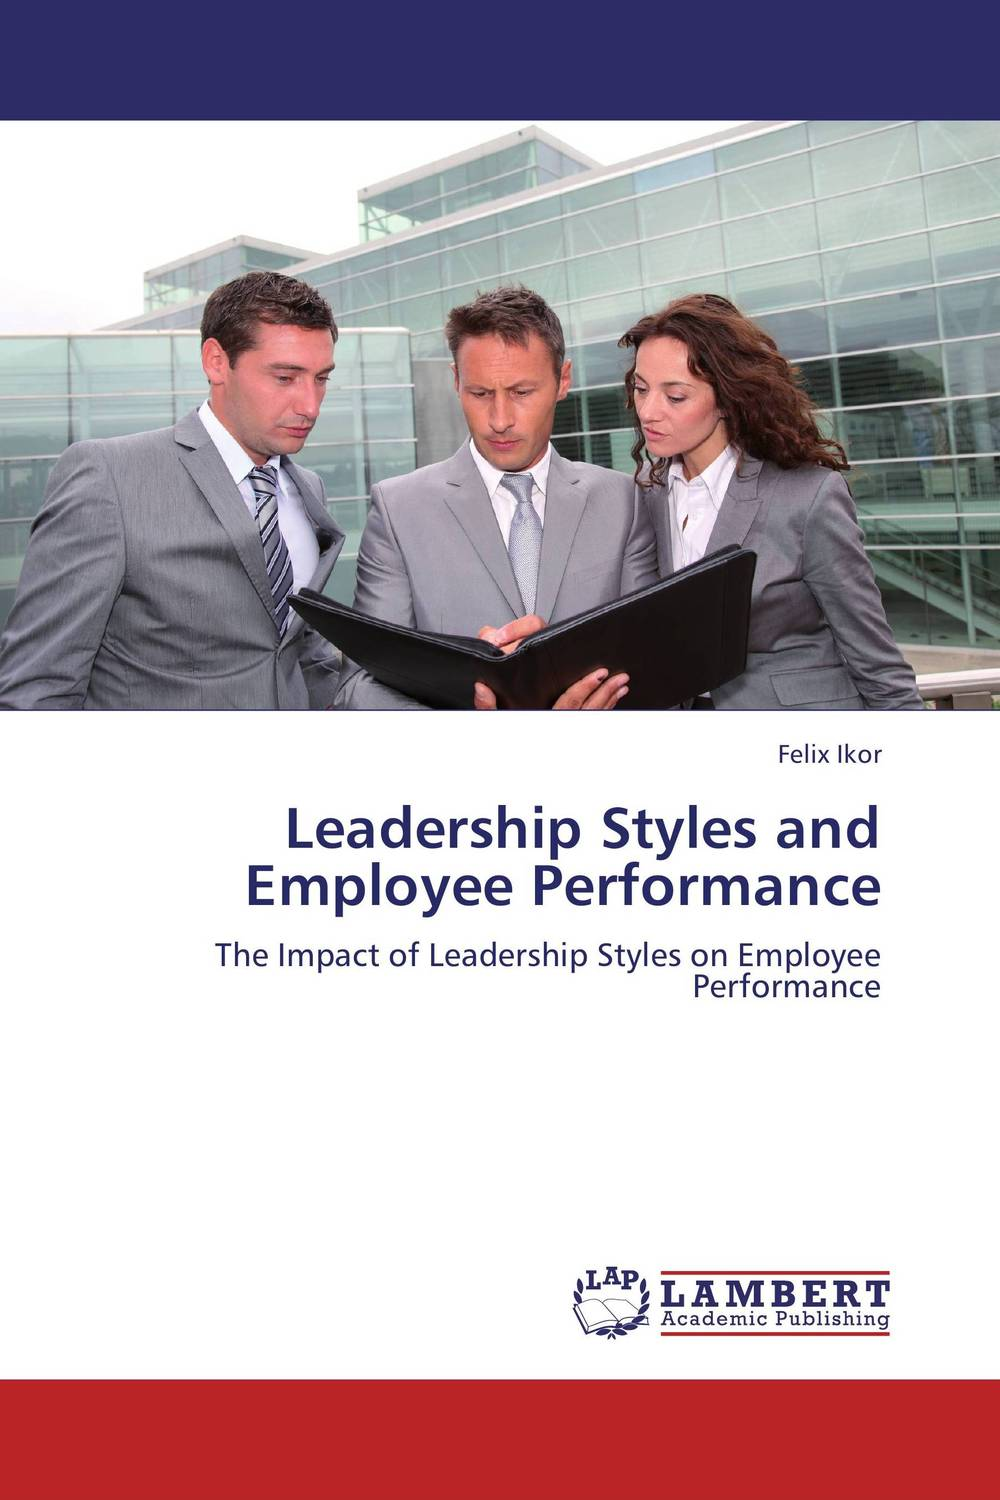 Leadership Styles and Employee Performance not working